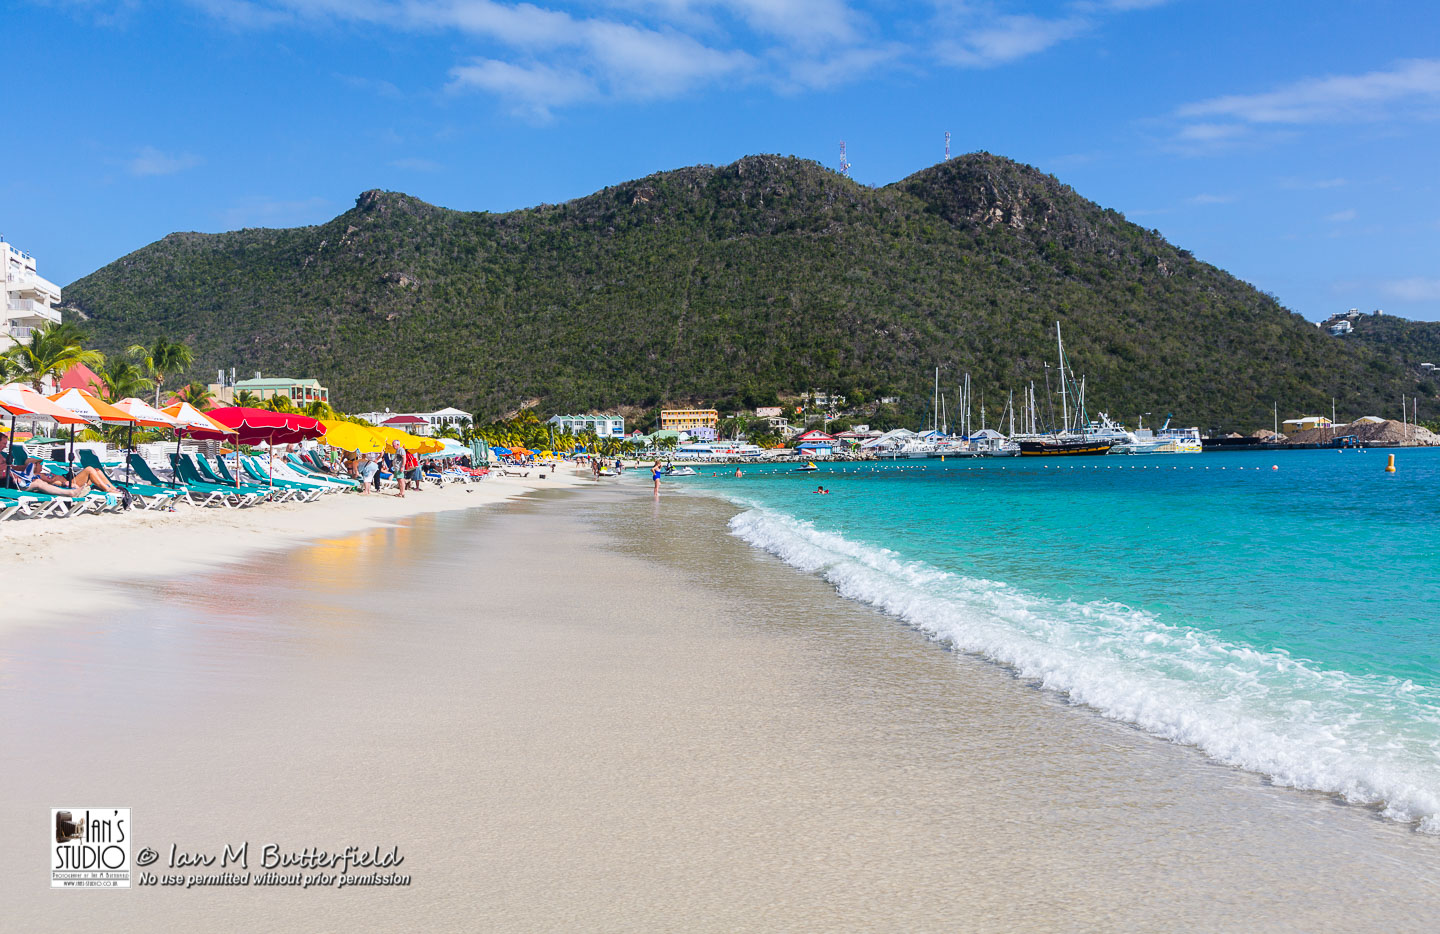 SALE 13 Sep 2018: Great Bay beach, Philipsburg, St Maarten – FIRST Sale